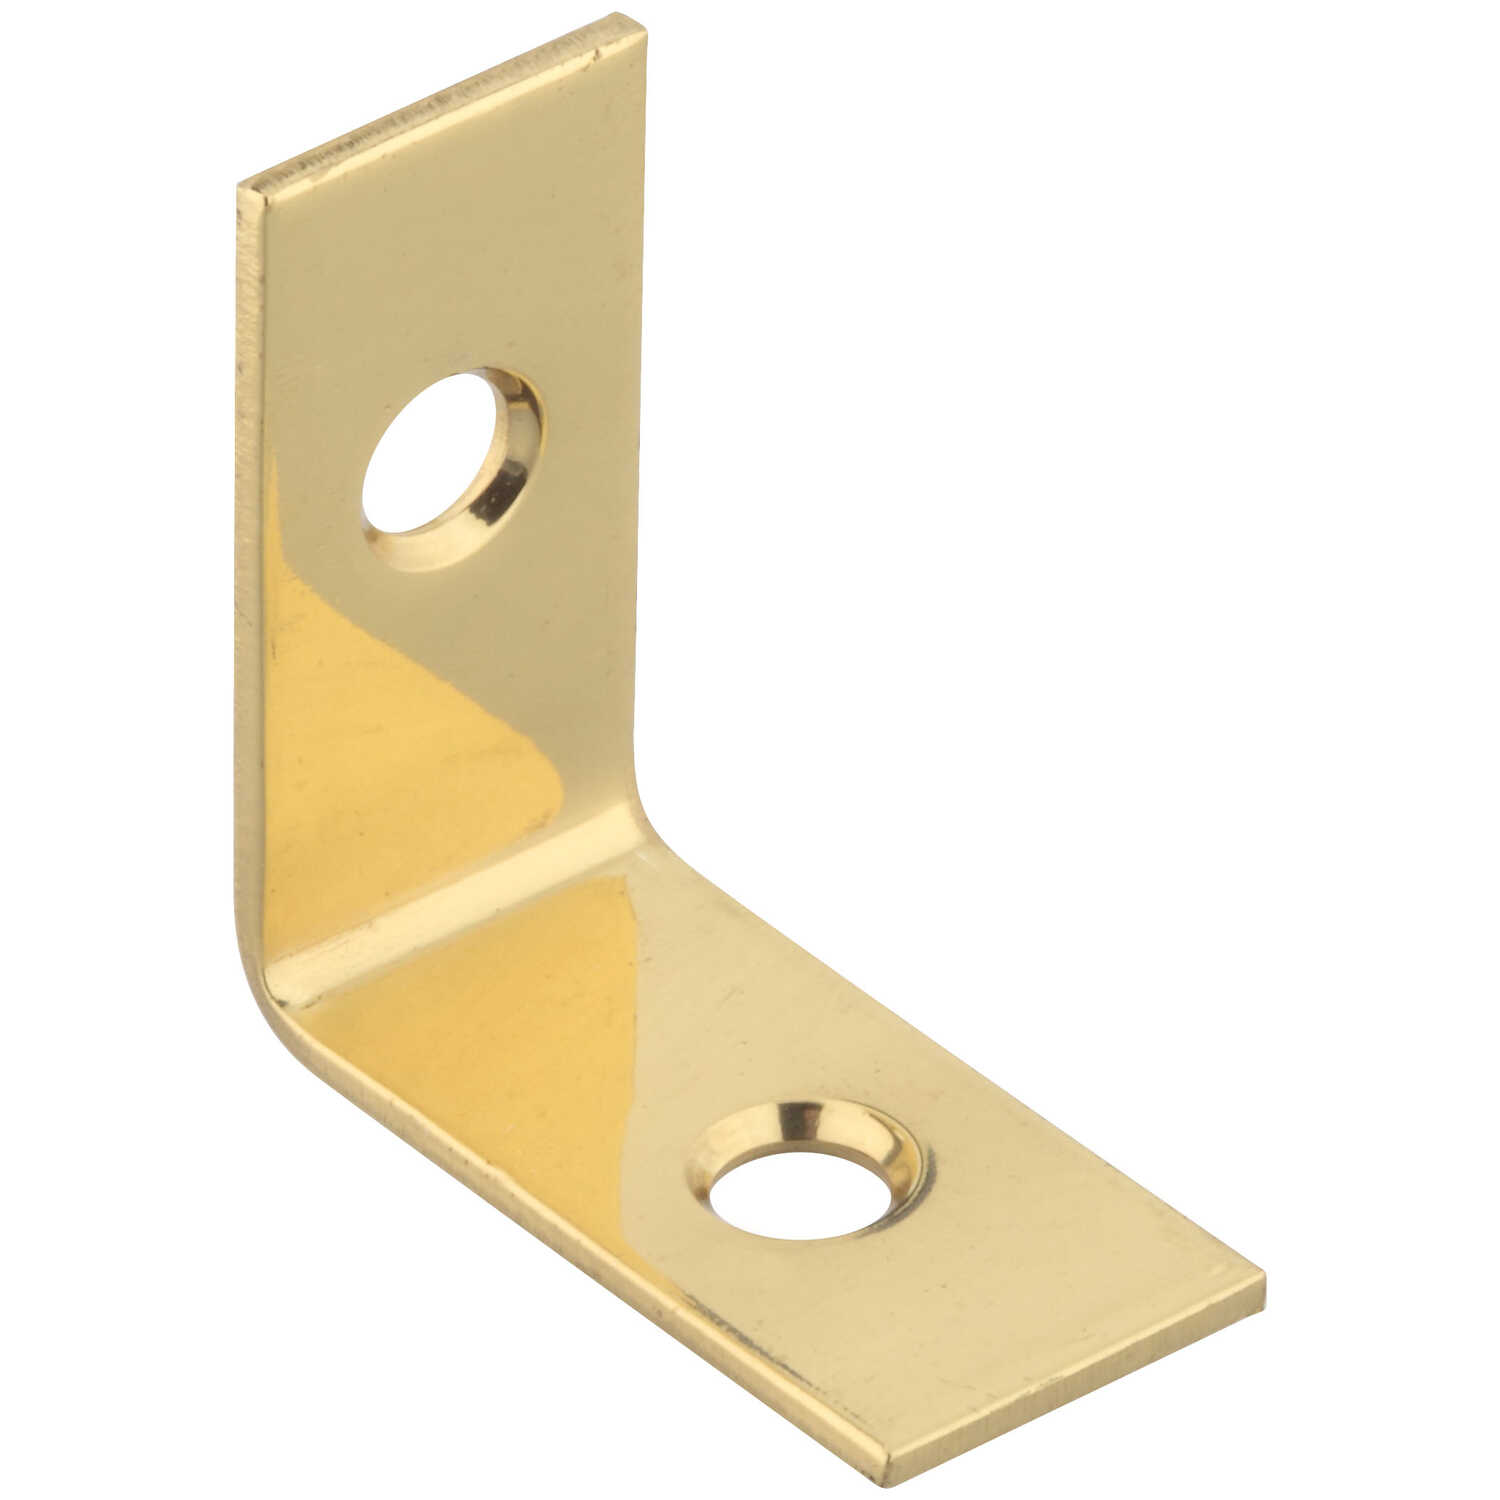 National Hardware  1 in. H x 1/2 in. W x 0.06 in. D Solid Brass  Inside  Corner Brace